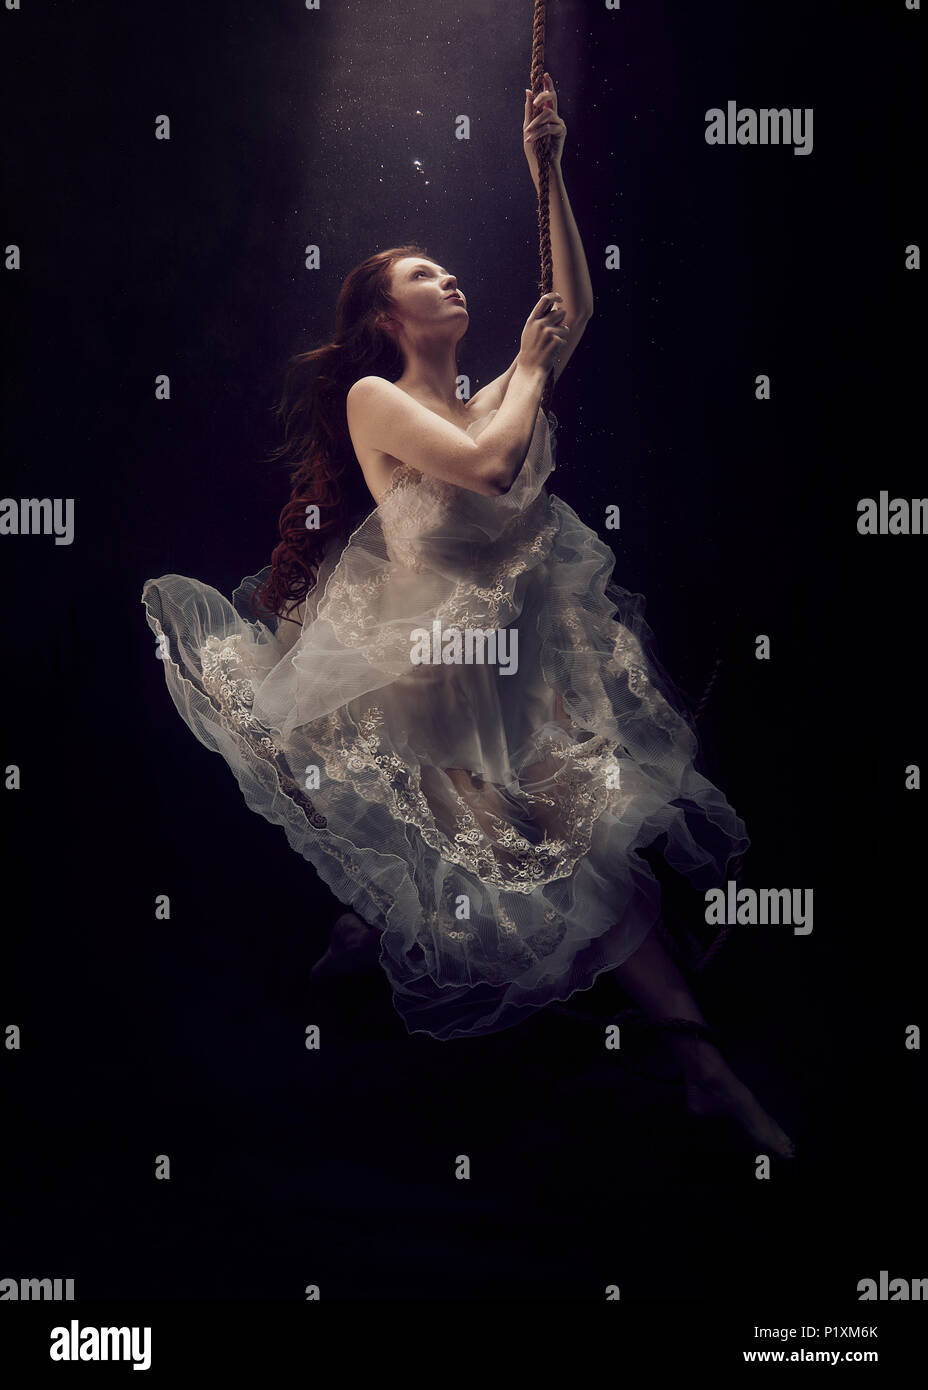 Underwater Fairytale - Stock Image